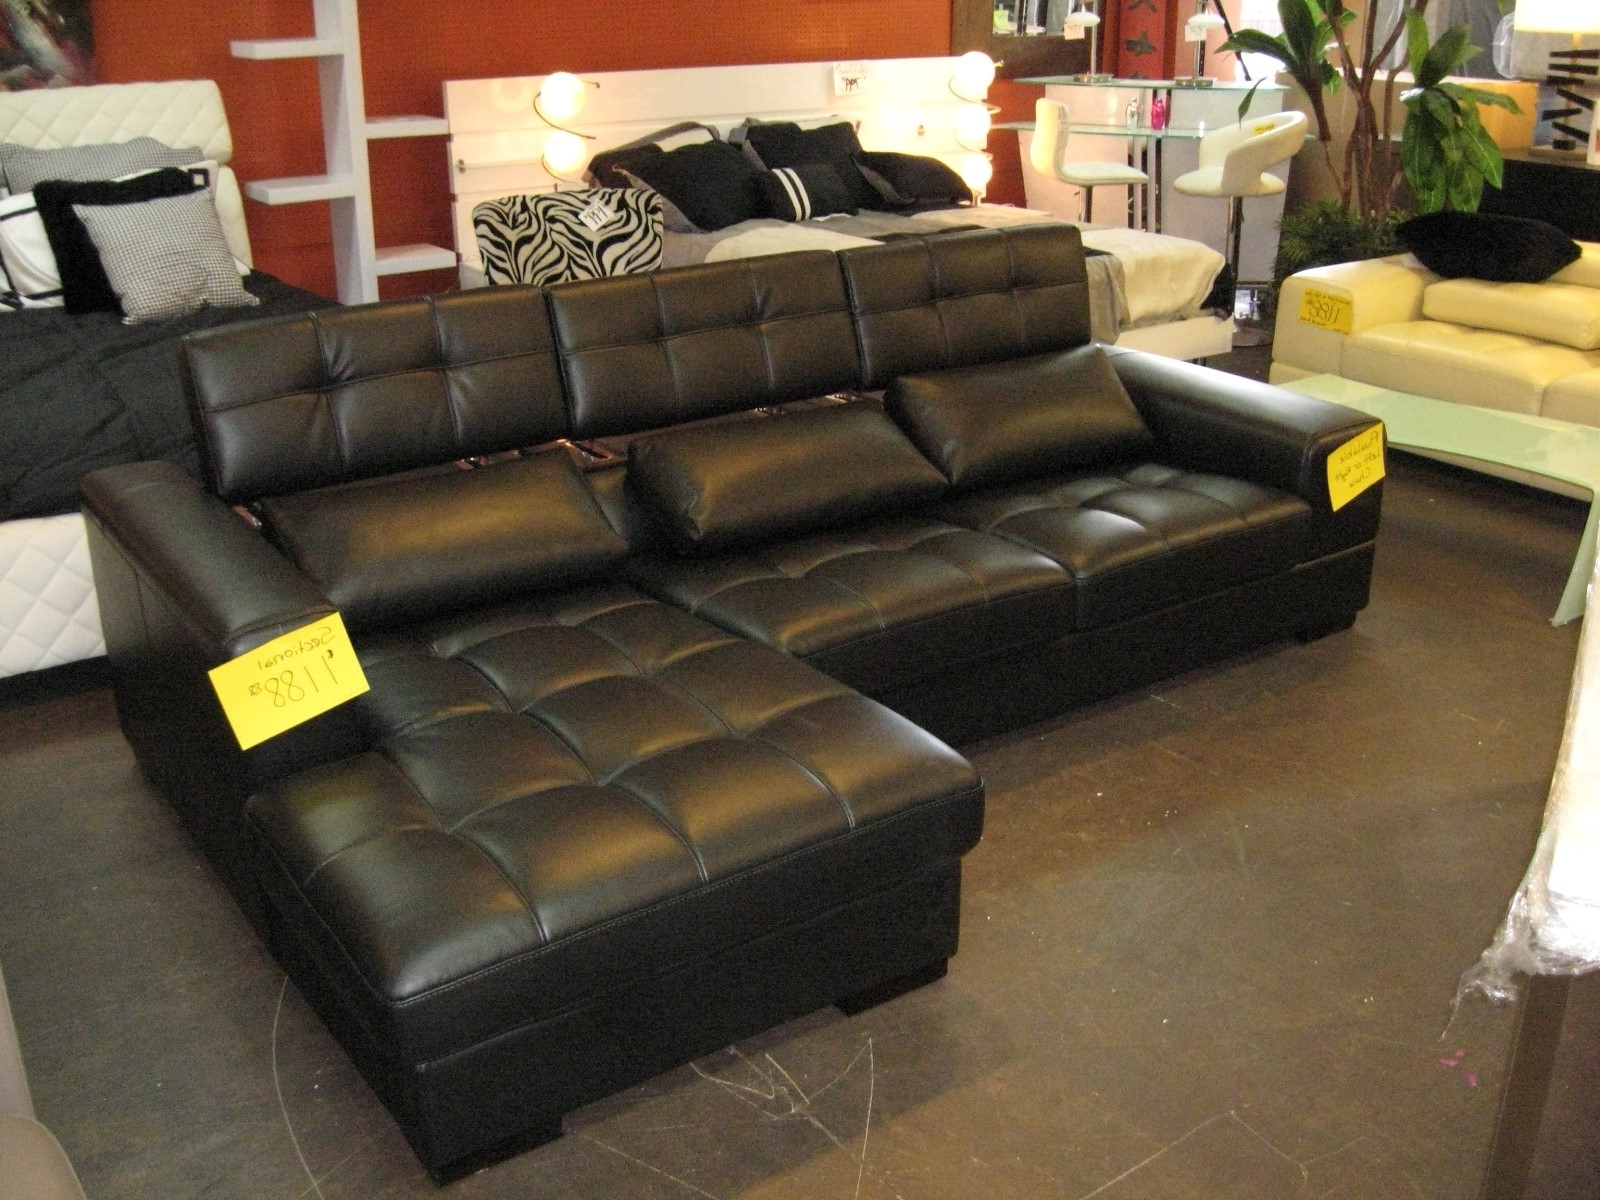 Well Known Leather Modular Sectional Sofas In Awesome Black Leather Modular Sectional Gallery – Liltigertoo (View 10 of 20)